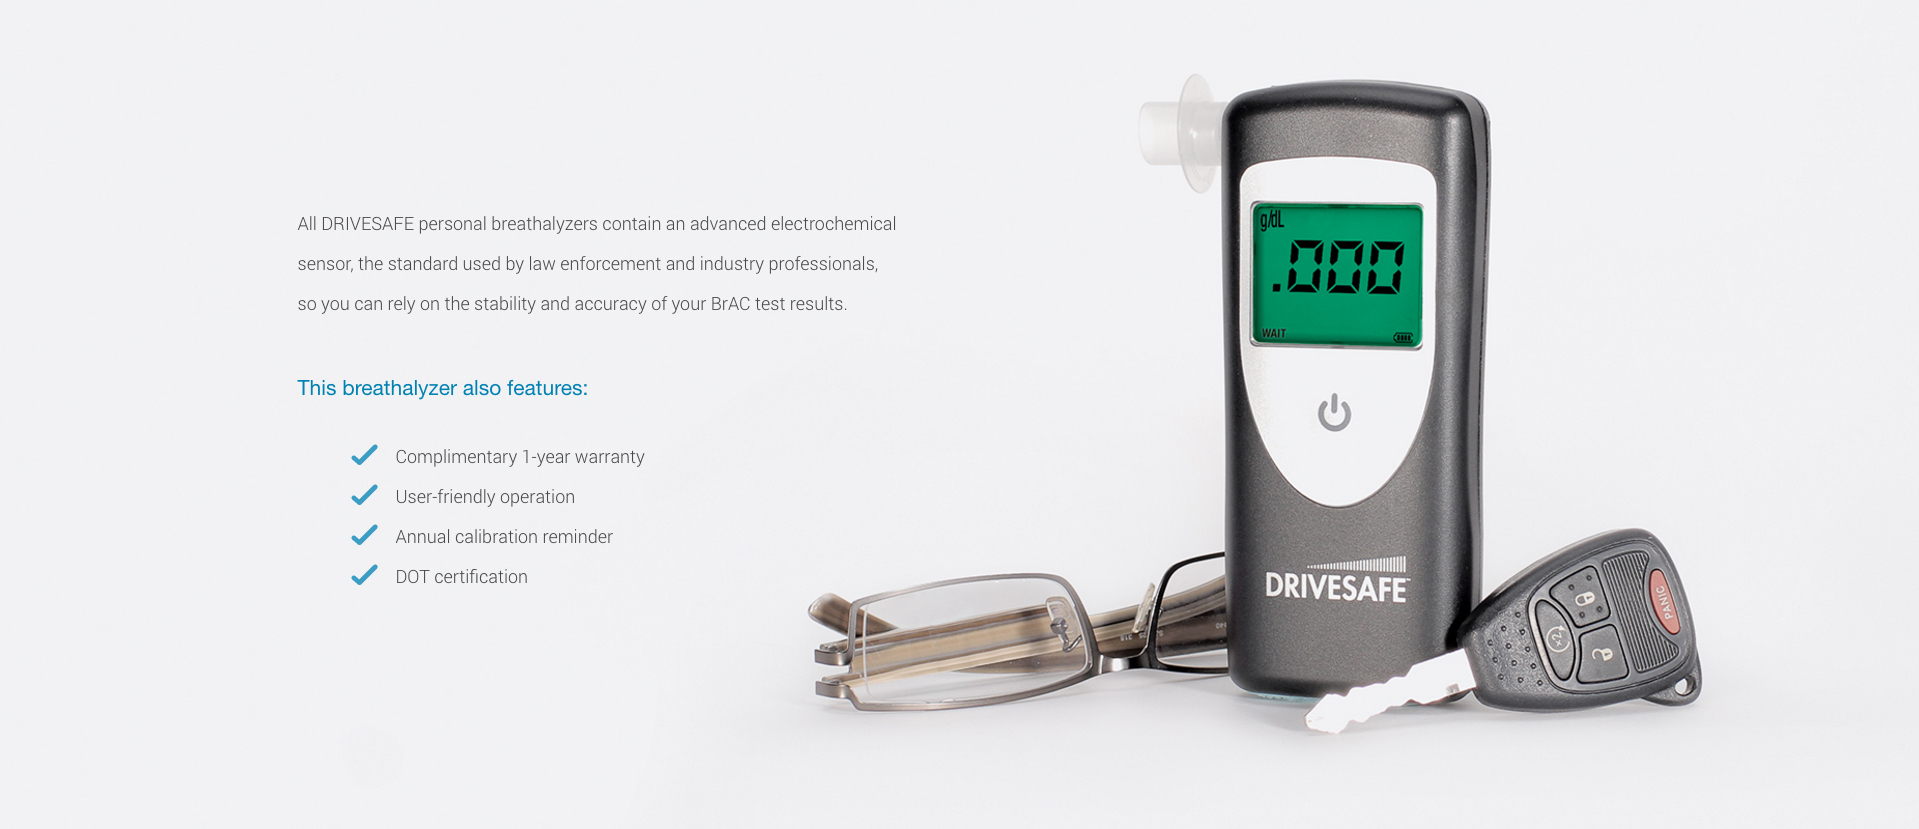 DRIVESAFE exec breathalyzer features